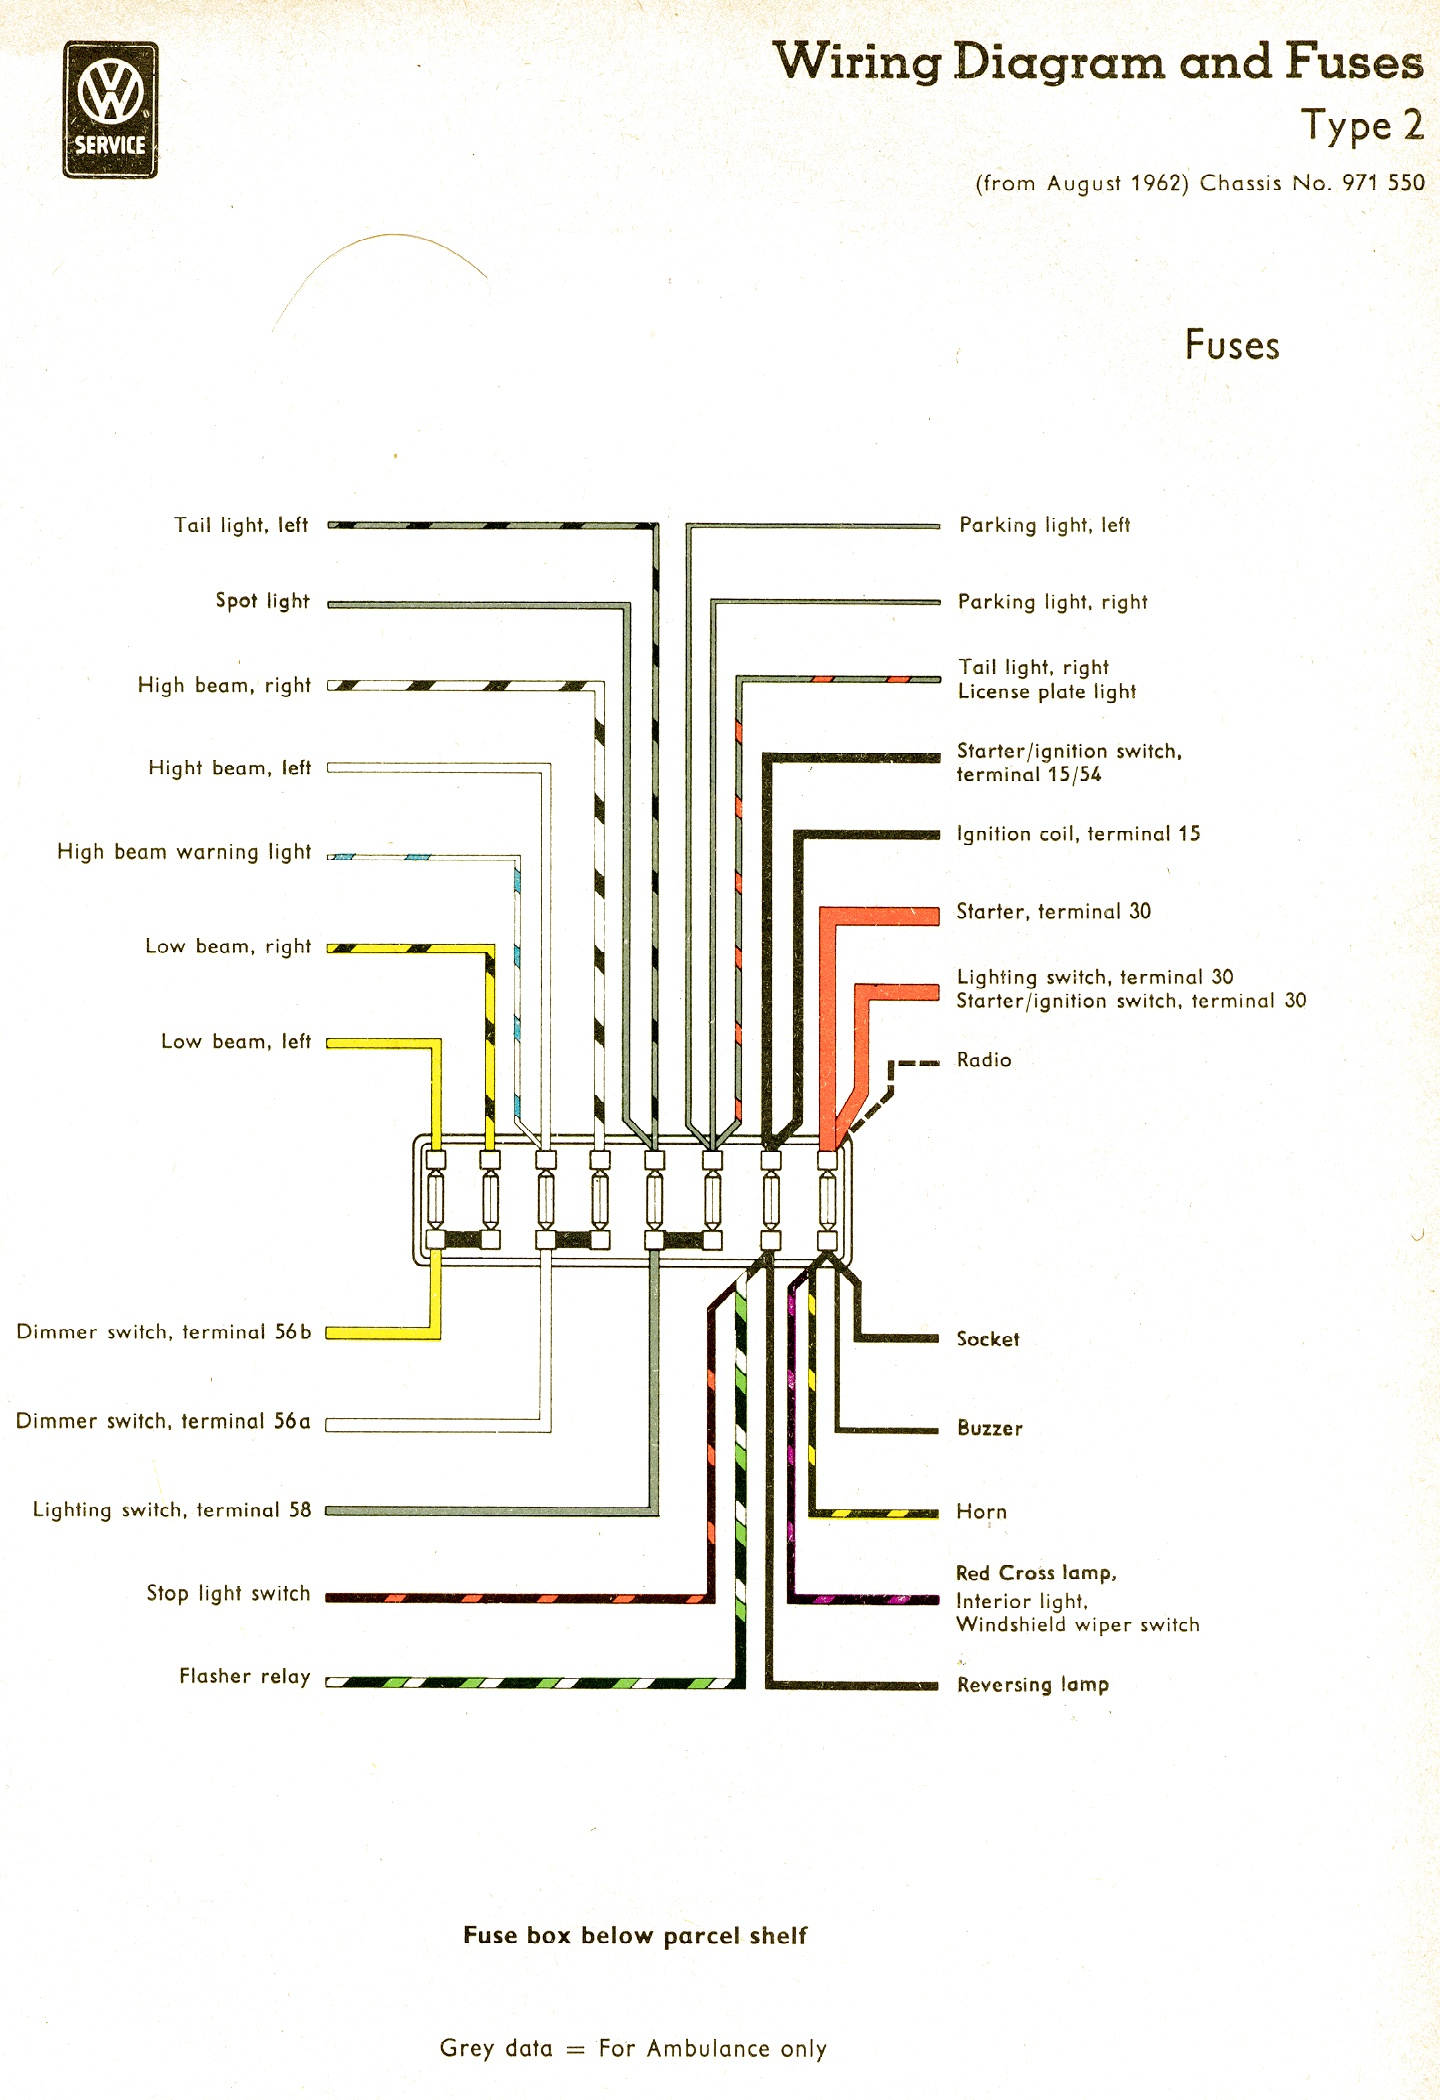 bus 62 fuse vw wiring diagrams 1976 corvette fuse box diagram at crackthecode.co